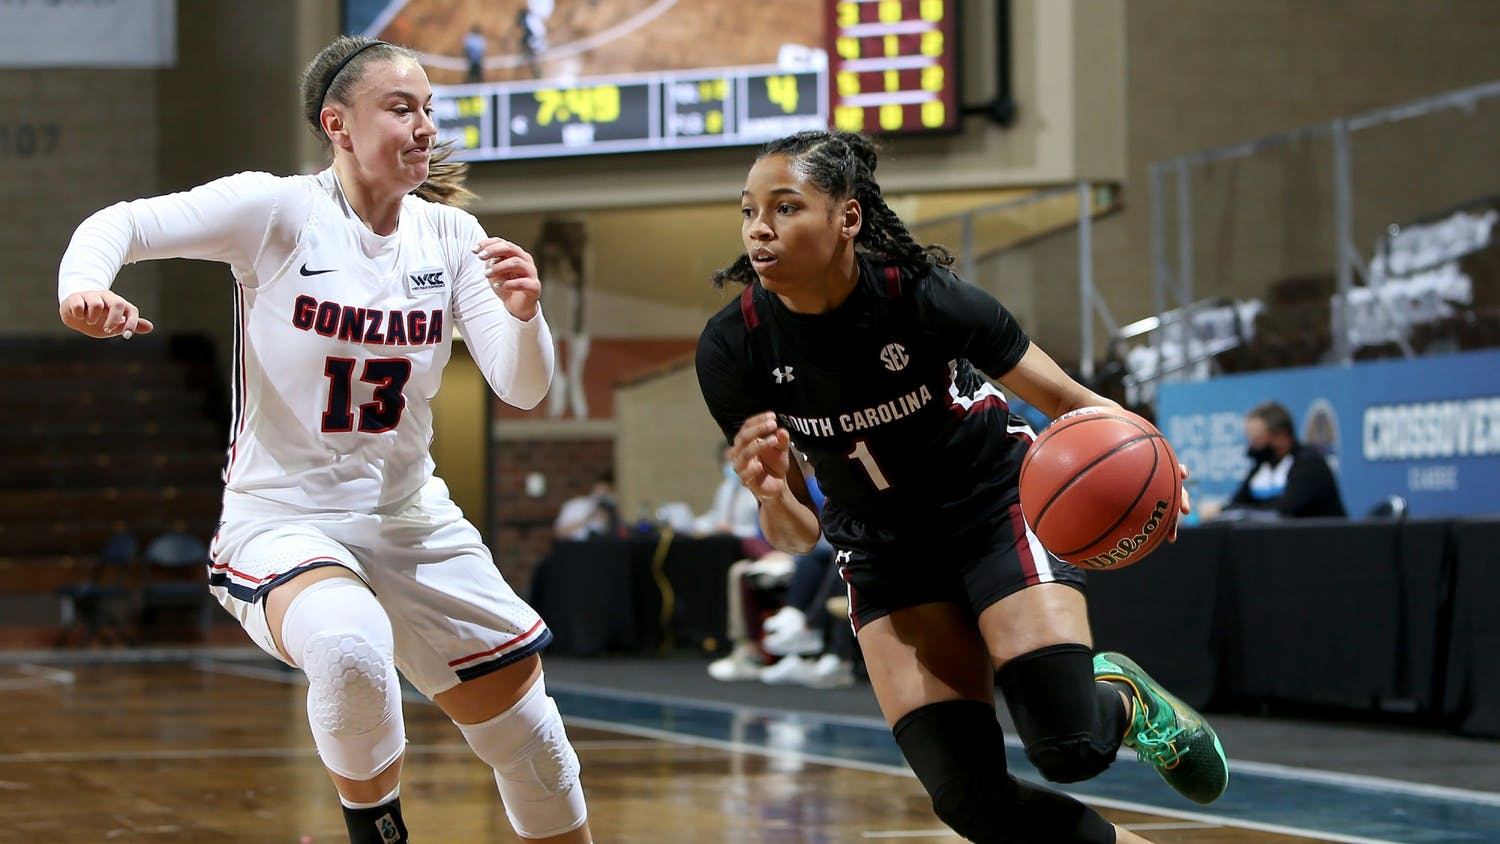 Sophomore guard Zia Cooke dribbles the ball around a Gonzaga defender. The Gamecocks won the game 79-72.